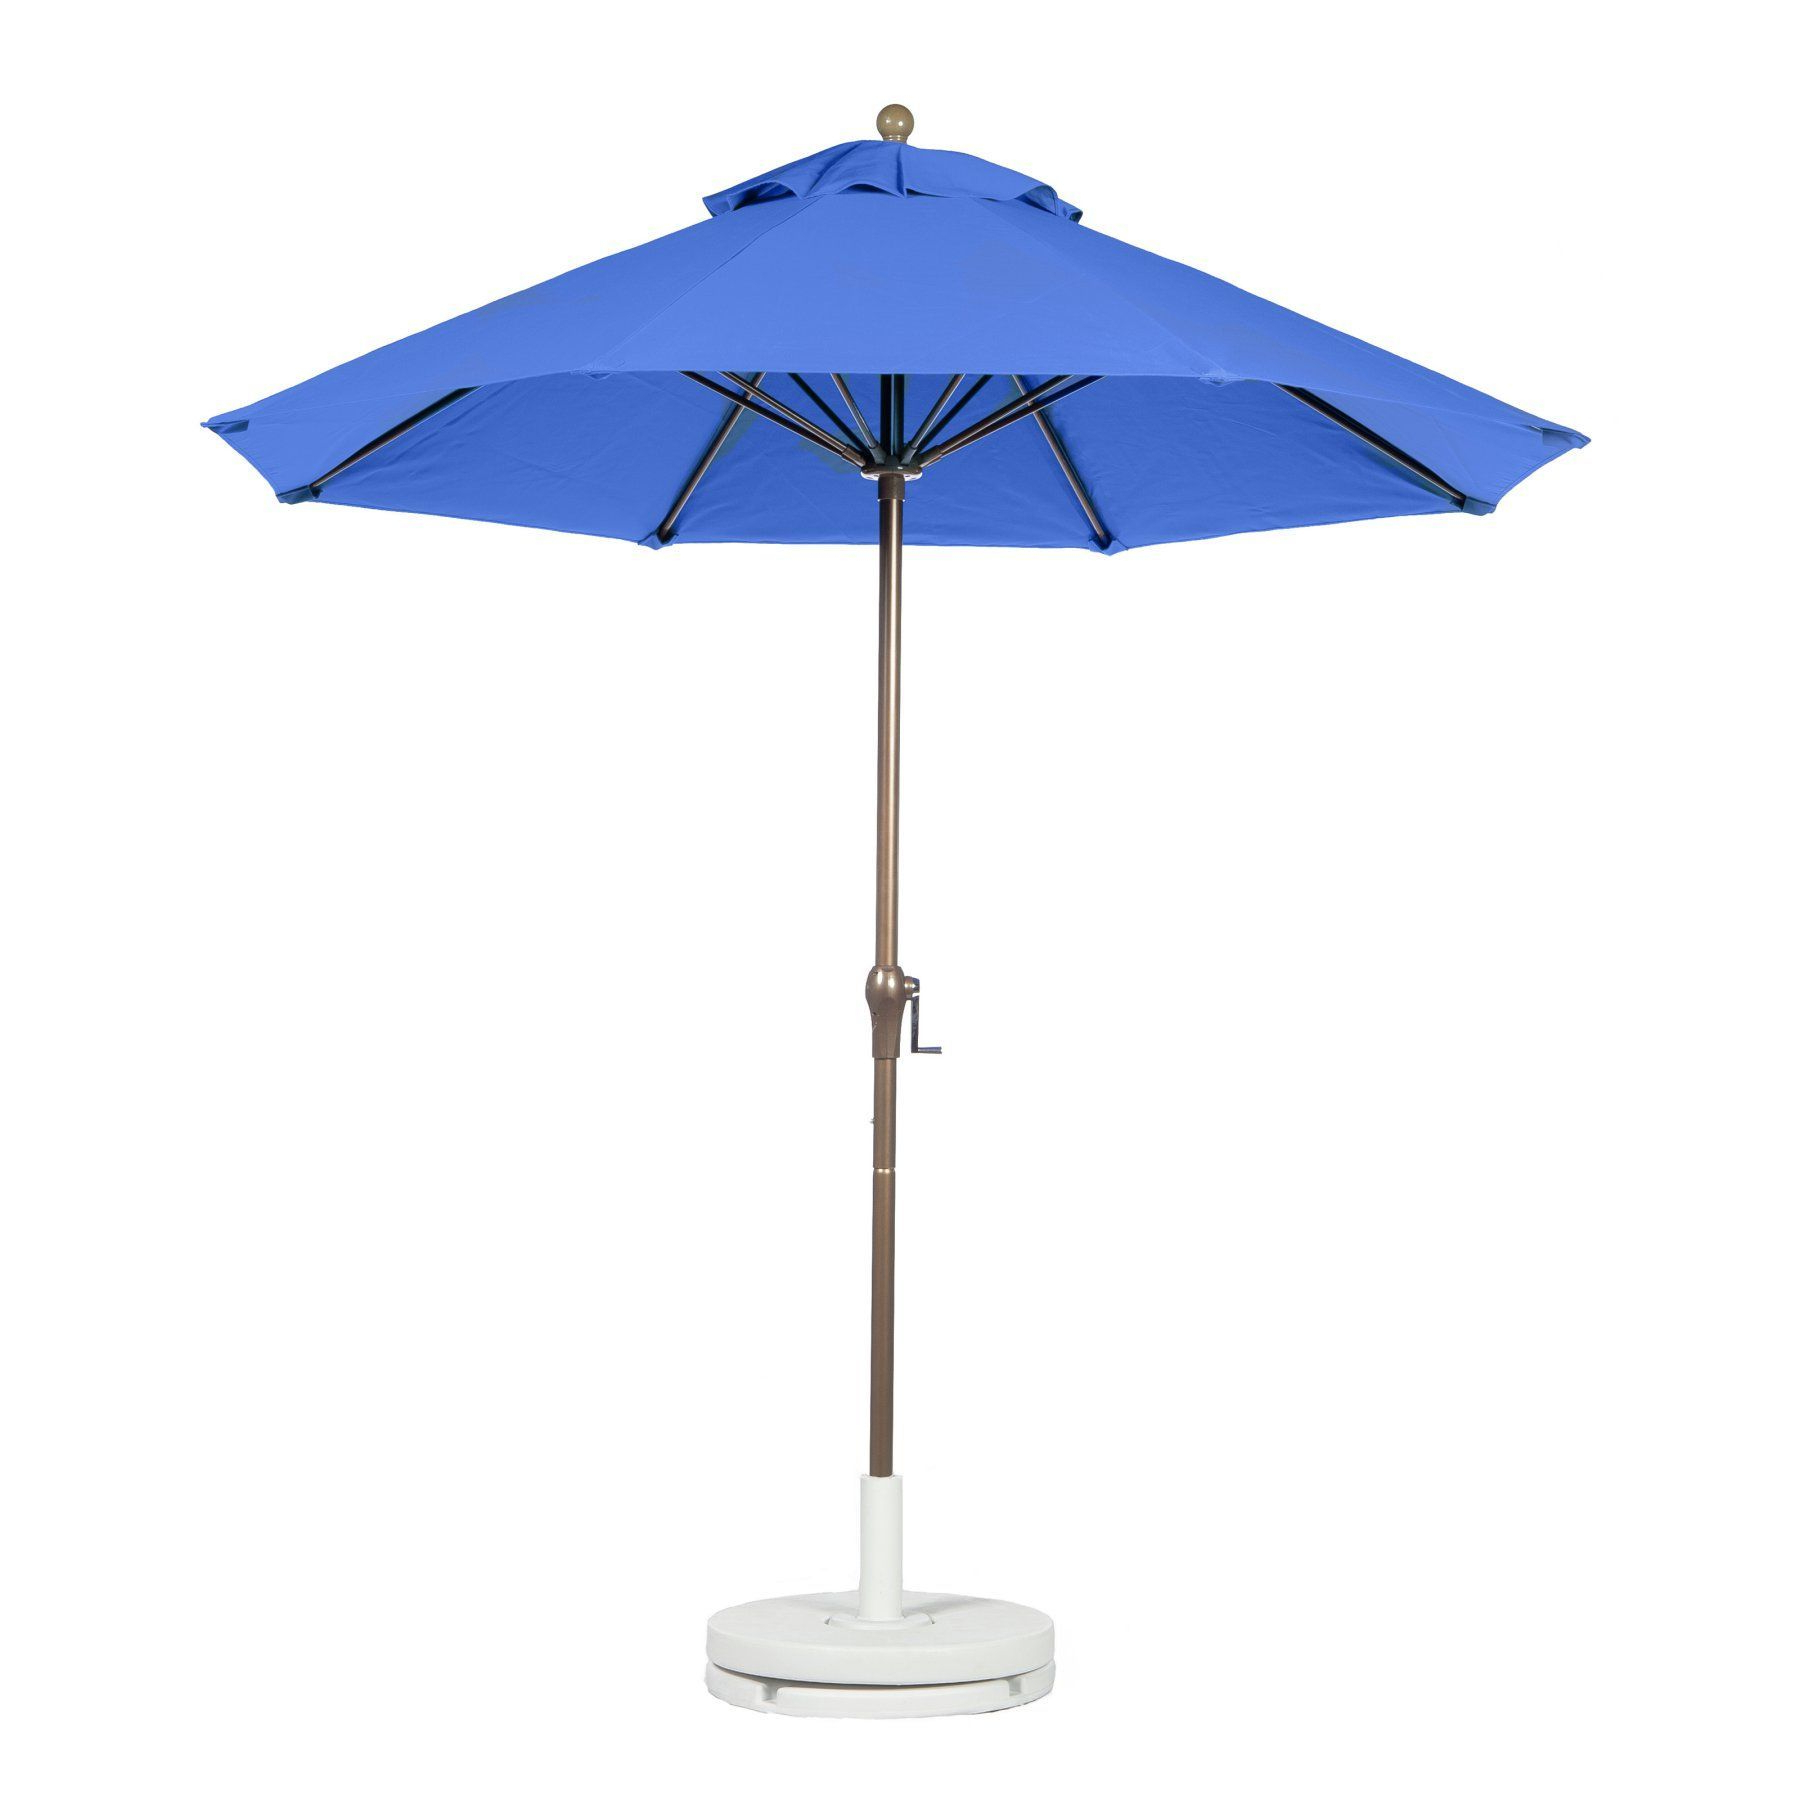 Frankford Umbrella Monterey Collection 7.5 Ft (View 11 of 20)